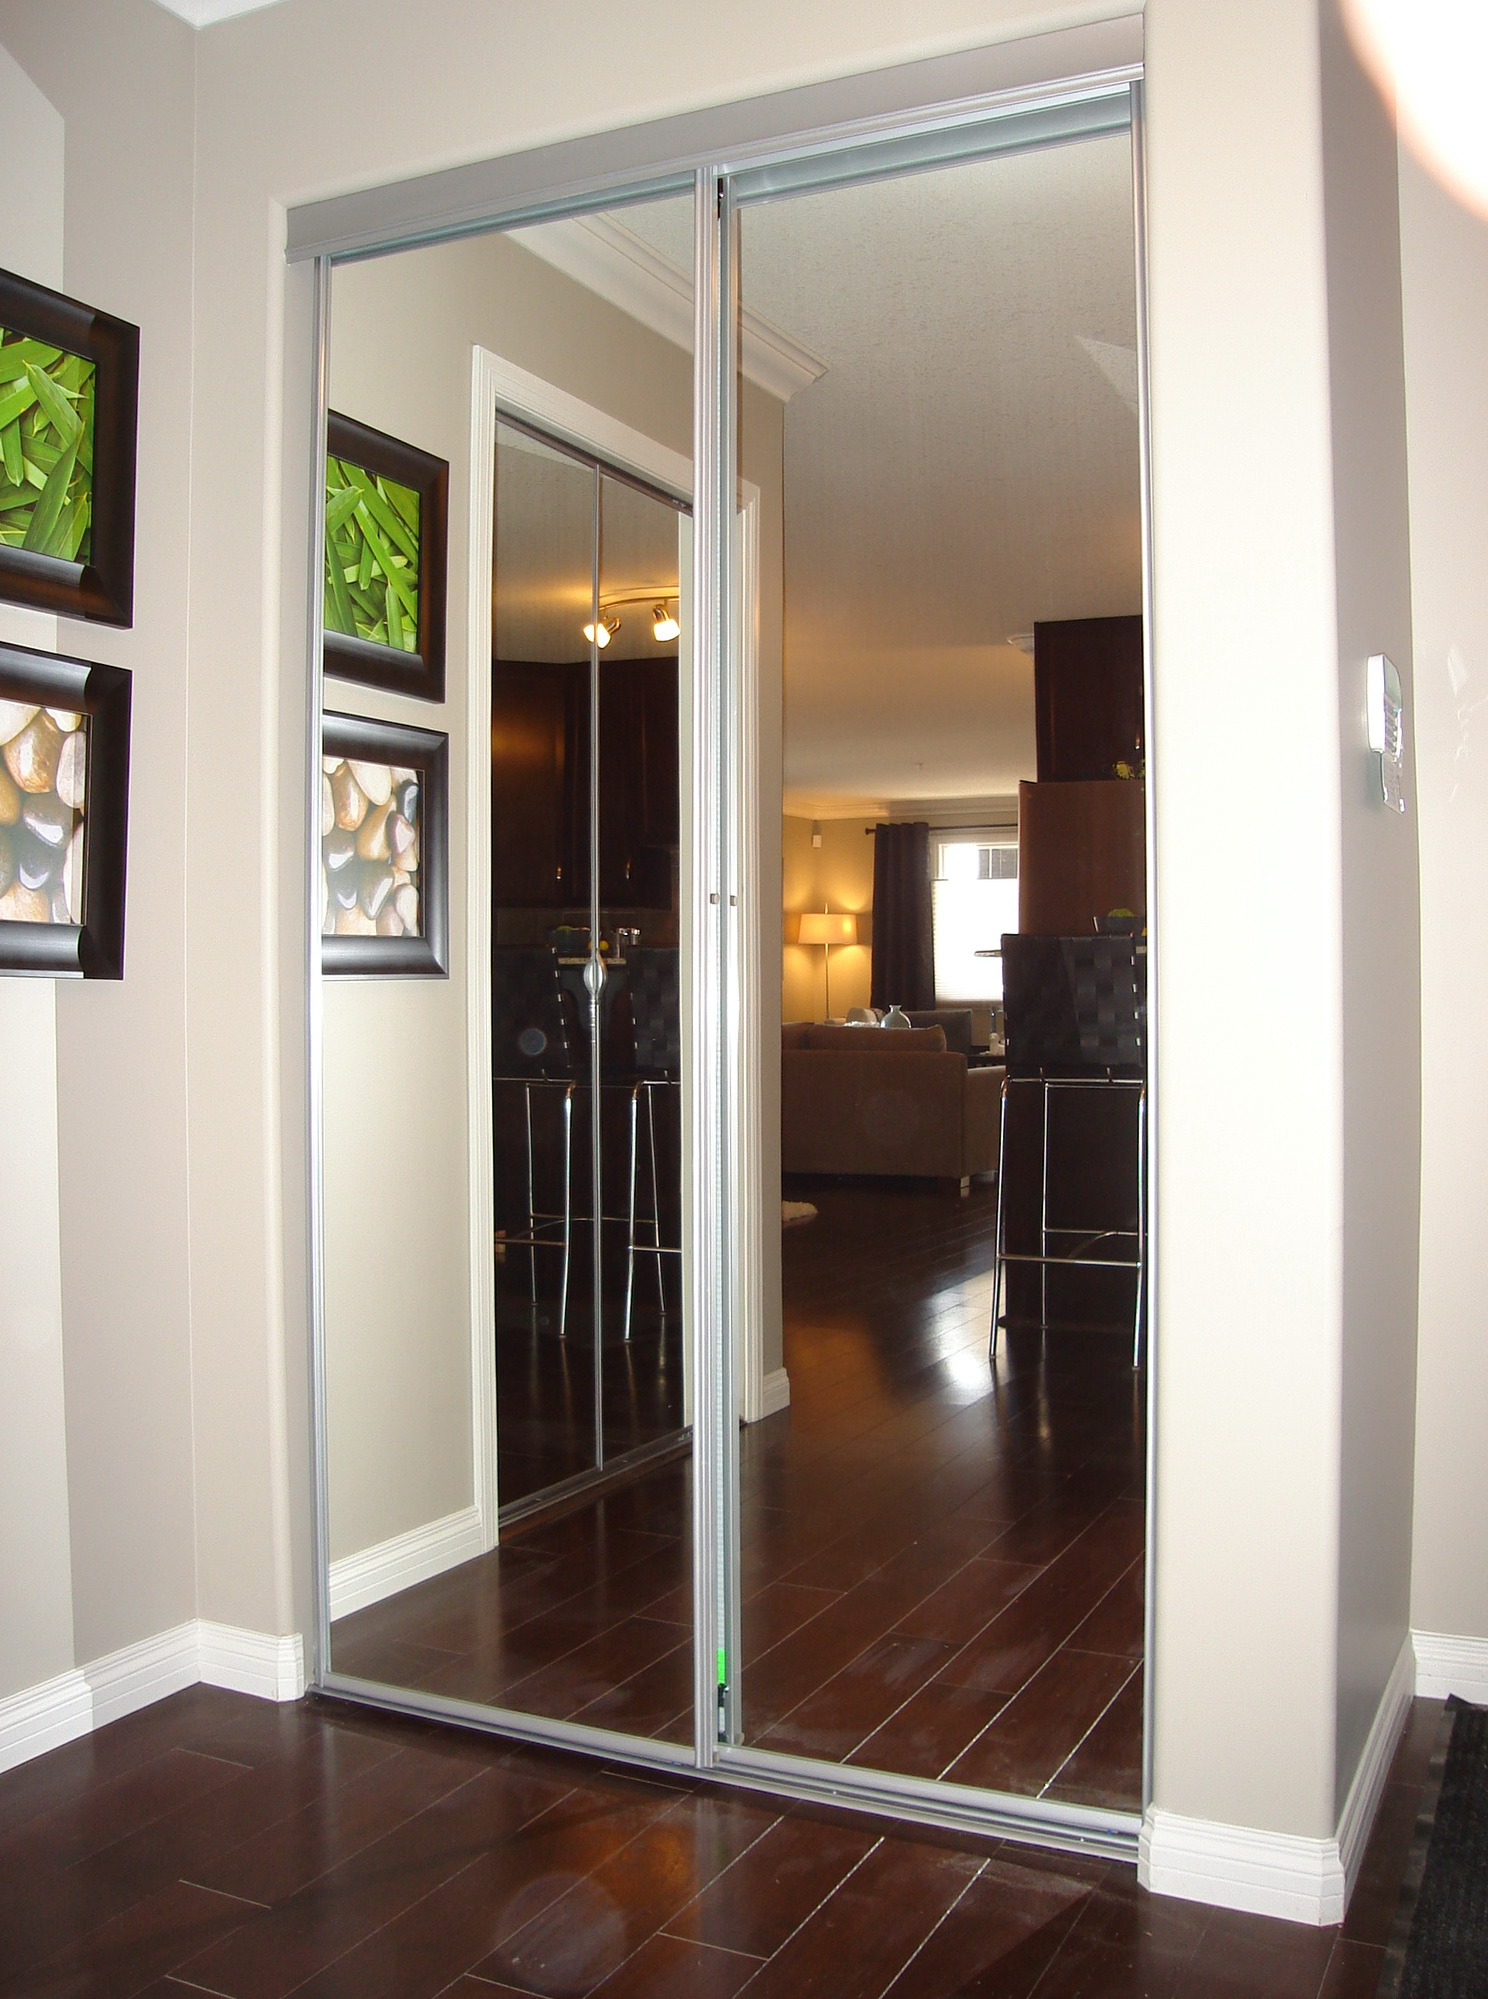 sliding mirror closet doors lowes home design ideas. Black Bedroom Furniture Sets. Home Design Ideas